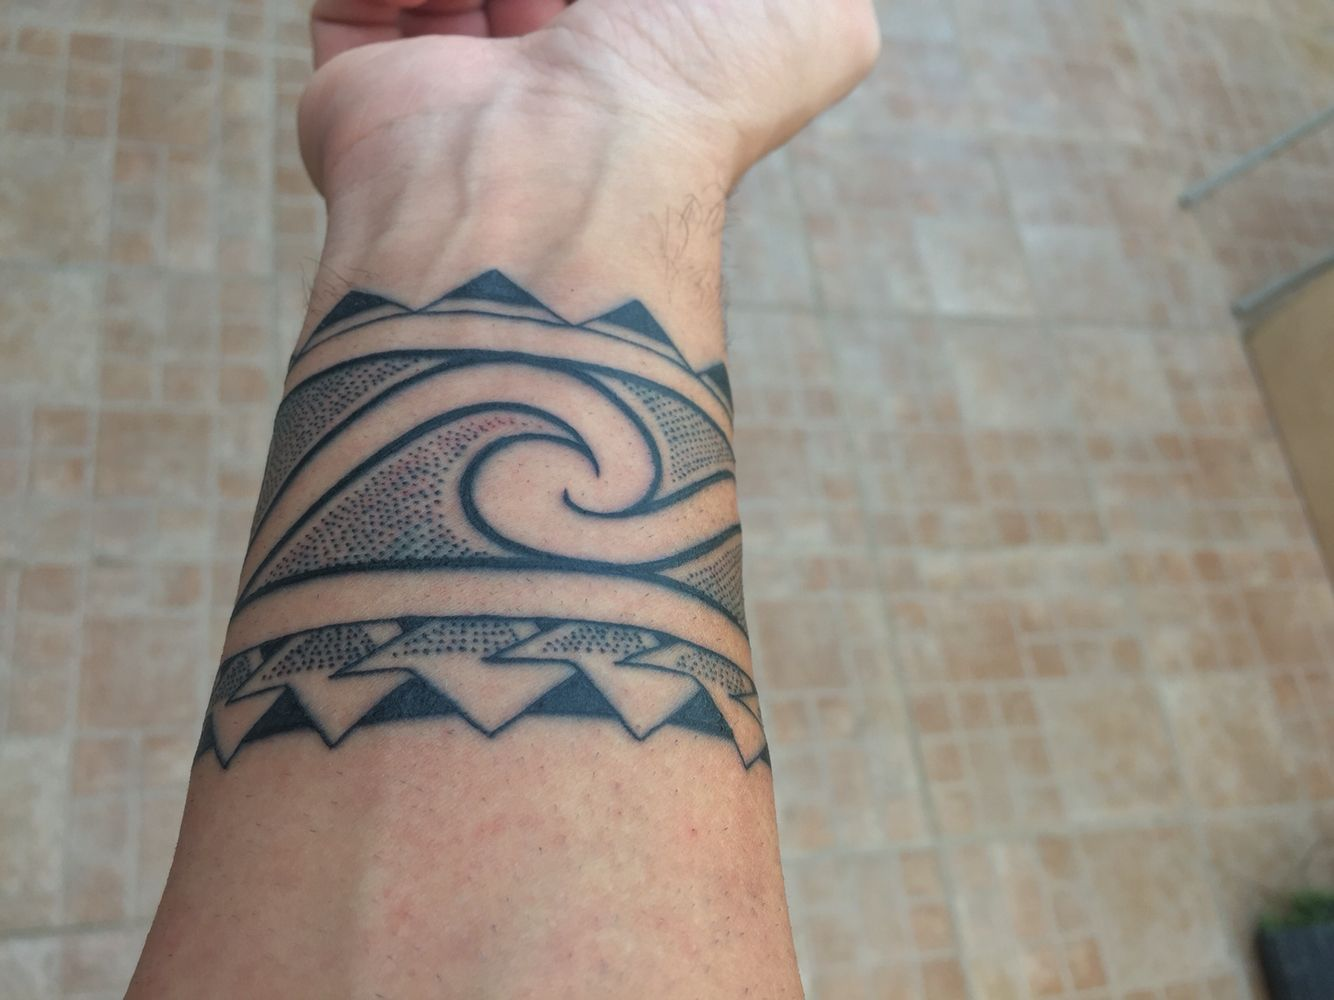 Maori Band Tattoo: My Maori Band Dots Tattoo